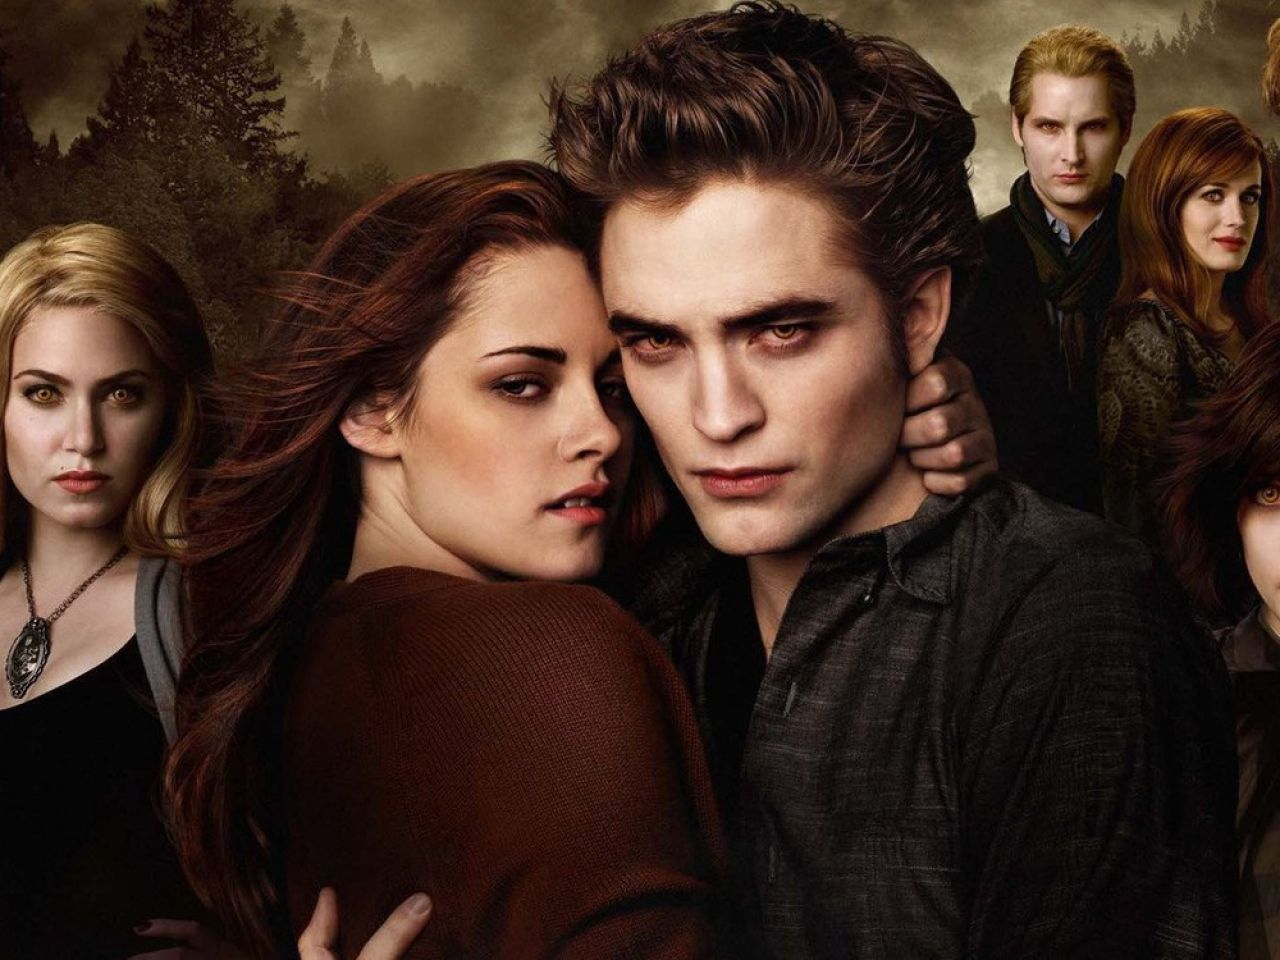 Twilight: New Moon, l'incredibile coincidenza accaduta a Kristen Stewart  sul set del film